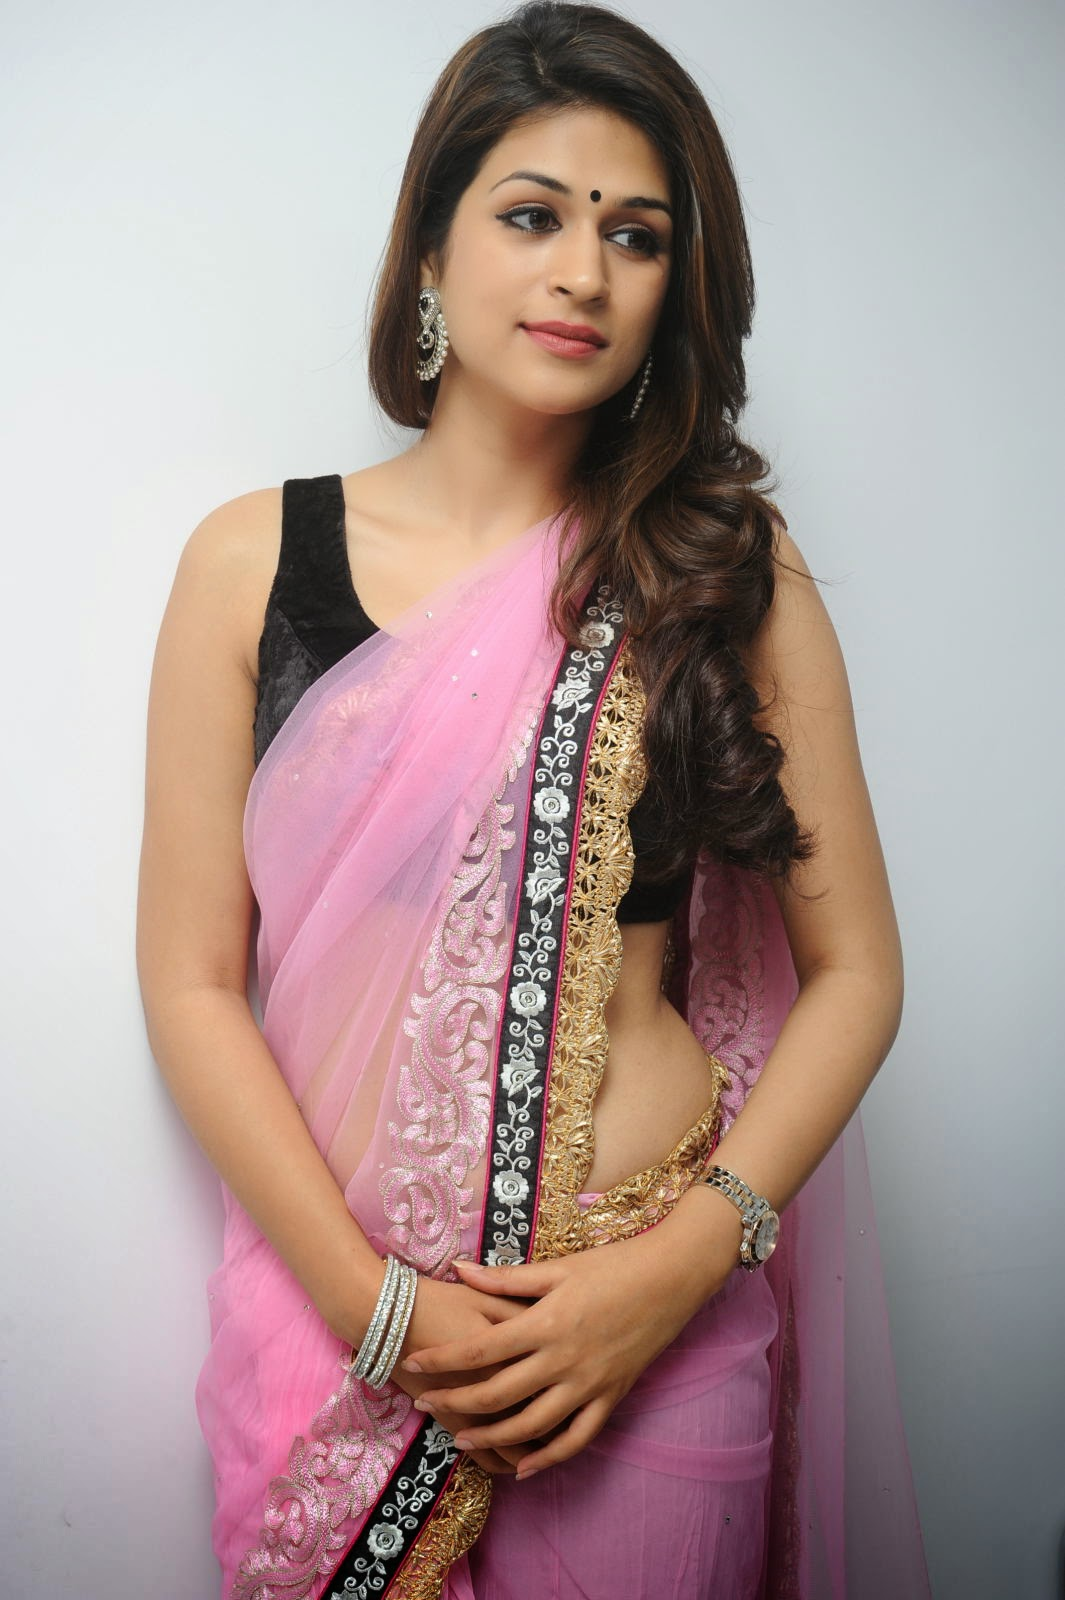 shraddha das Age, Height, Affairs, Family, Education, Wiki, Husband